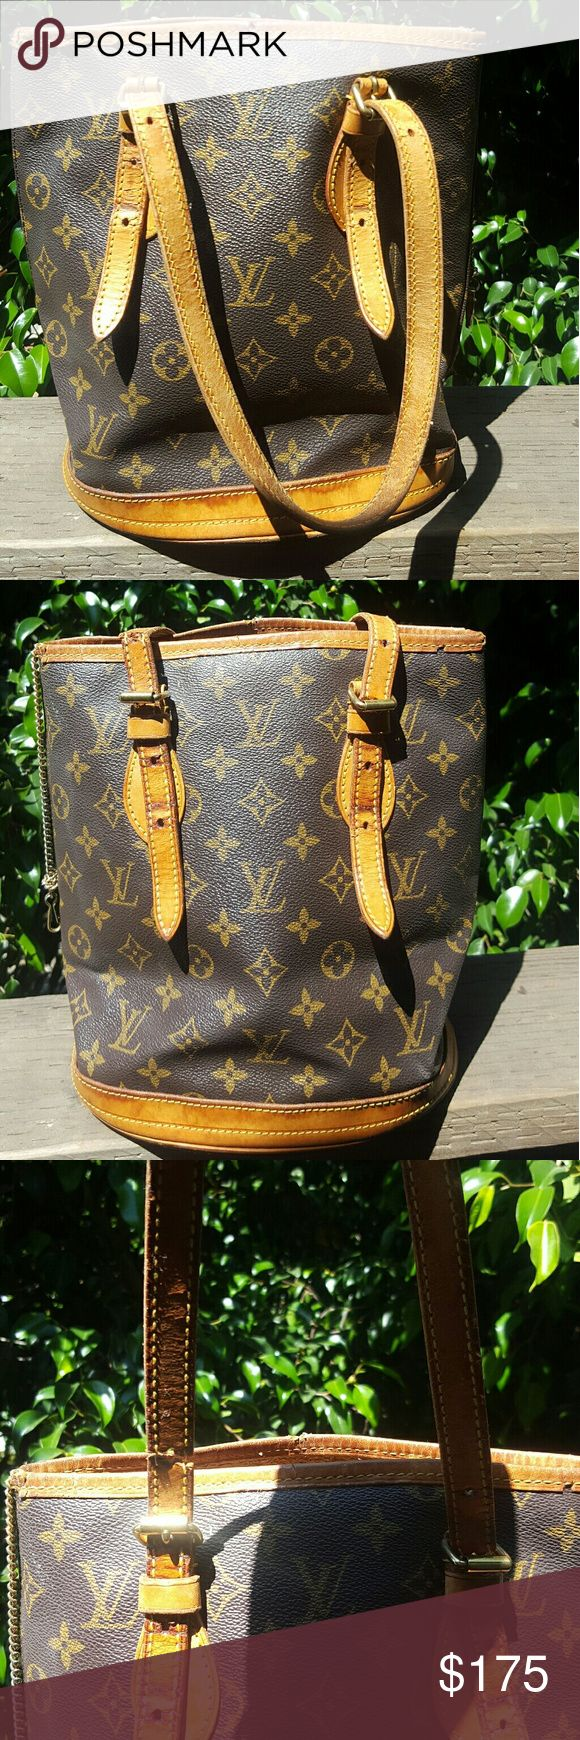 Authentic Louis Vuitton bucket PM bag Used condition 100% Authentic Louis Vuitton Bags